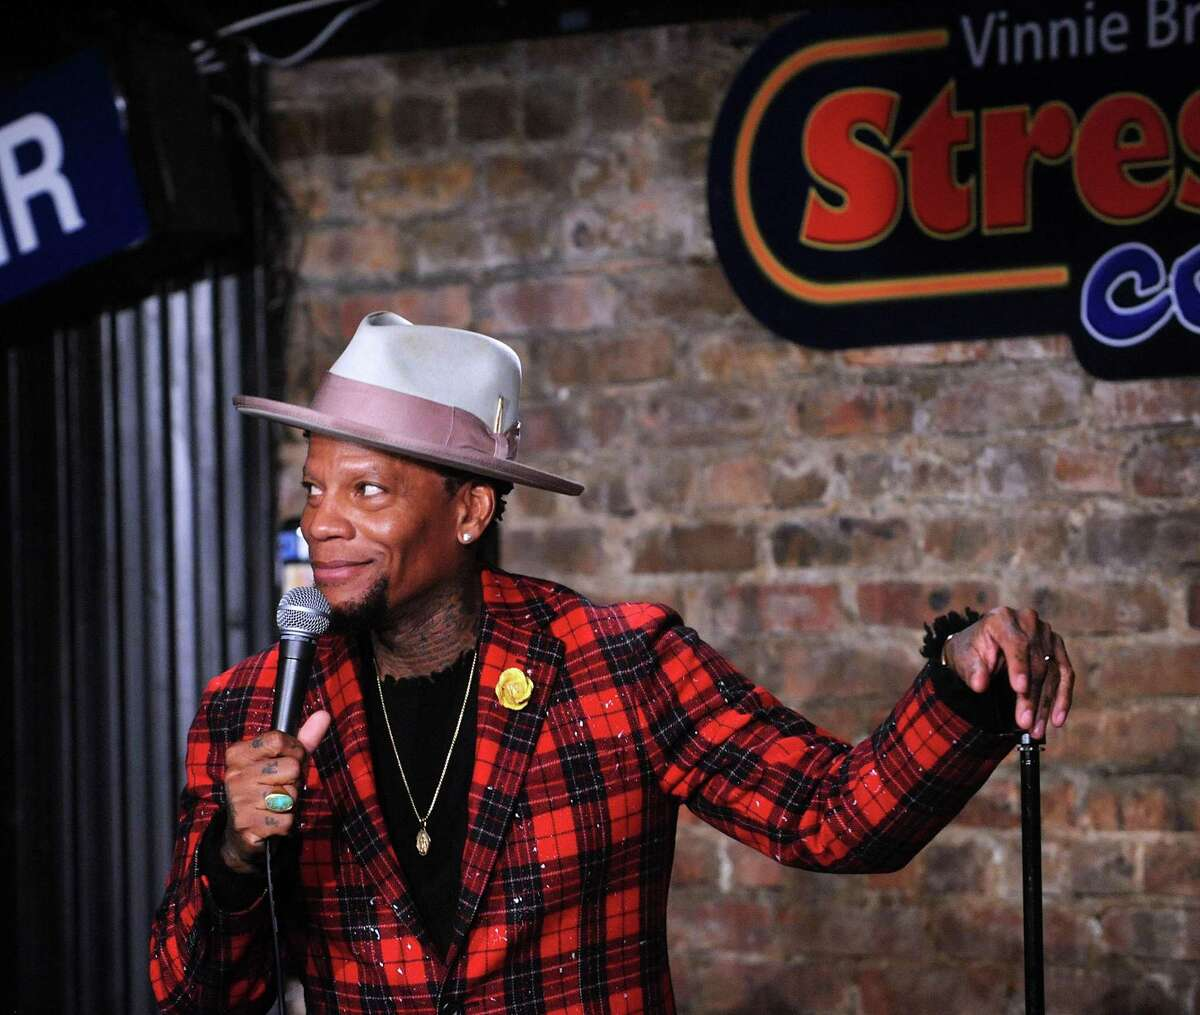 D.L. Hughley smiles at the New Jersey Stress Factory in February. D.L. Hughley In Bridgeport, popular and outspoken comic D.L. Hughley is scheduled to perform for six shows in four days at Stress Factory Bridgeport, 167 State St., from Thursday-Sunday, Oct. 22-25. Masks are required when not seated. Tickets are for table seating - $80 for two, $160 for four, $240 for six. There is a two-item minimum per person, which can be any two items that Stress Factory sells. Times vary; see bridgeport.stressfactory.com.